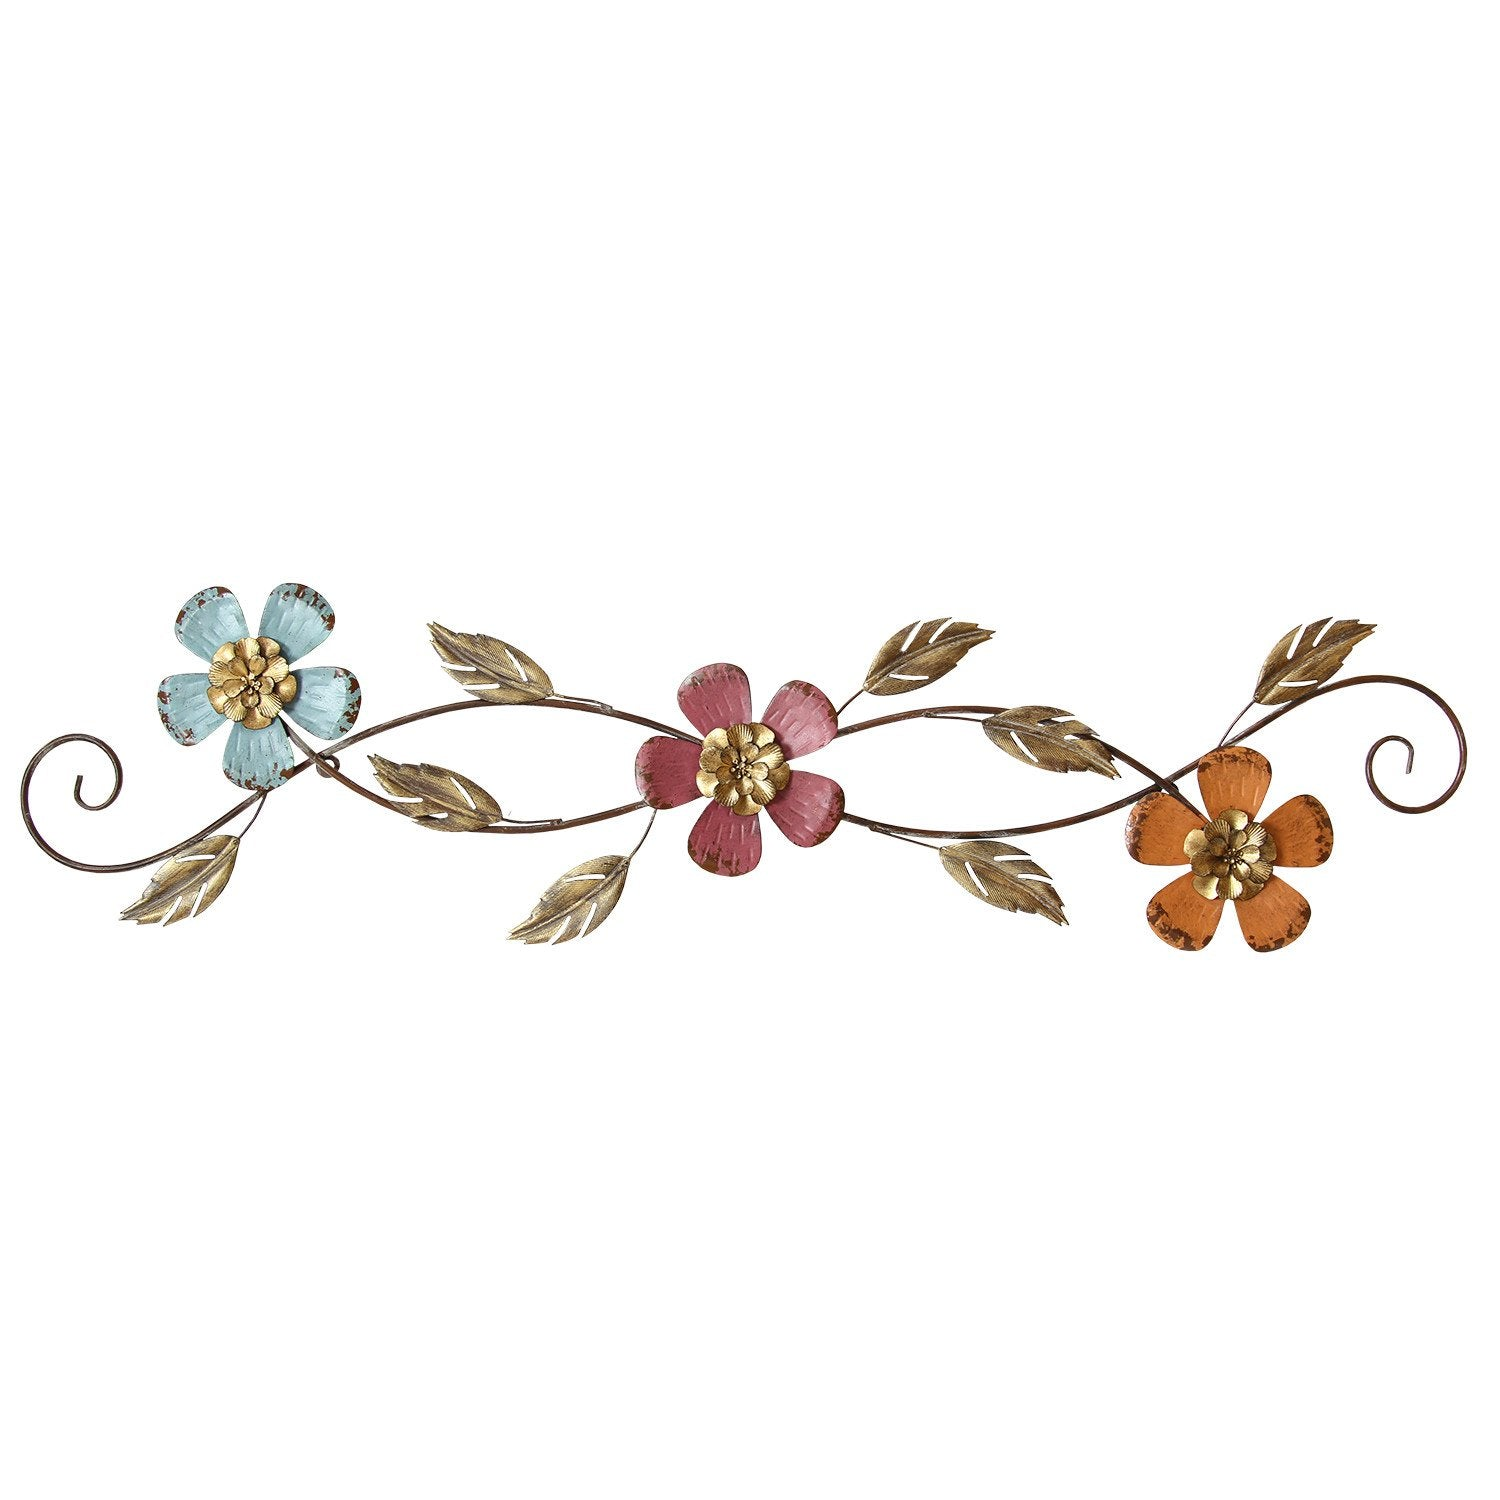 "40"" X 0.75"" X 10"" Multi-color Floral Scroll Wall Decor"